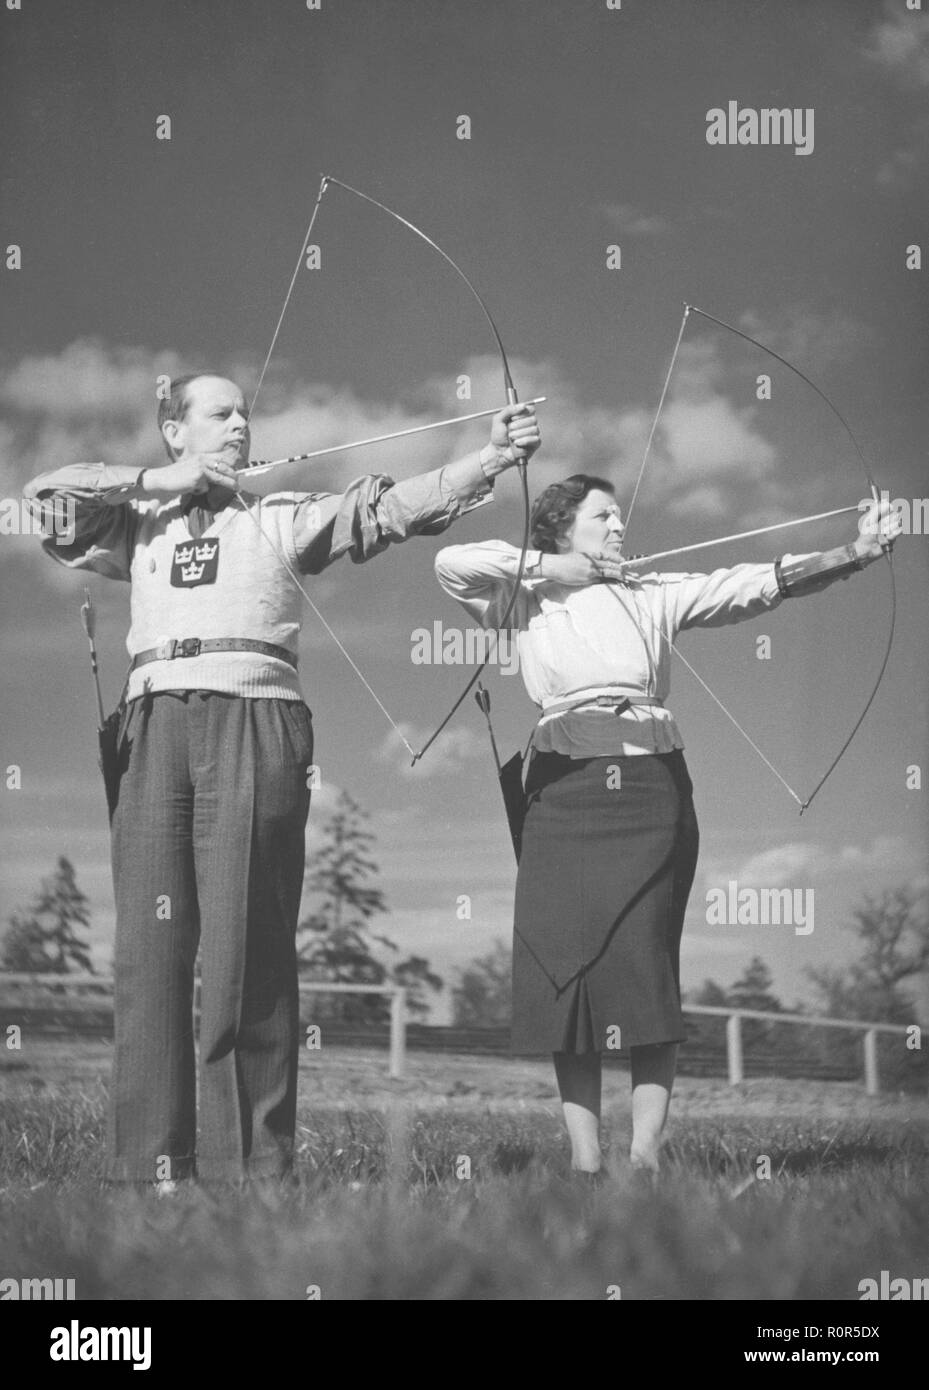 Archers in the 1940s. Henry Kjellson with wife Tina are both active in archery and is here seen participating in a competition 1941. - Stock Image